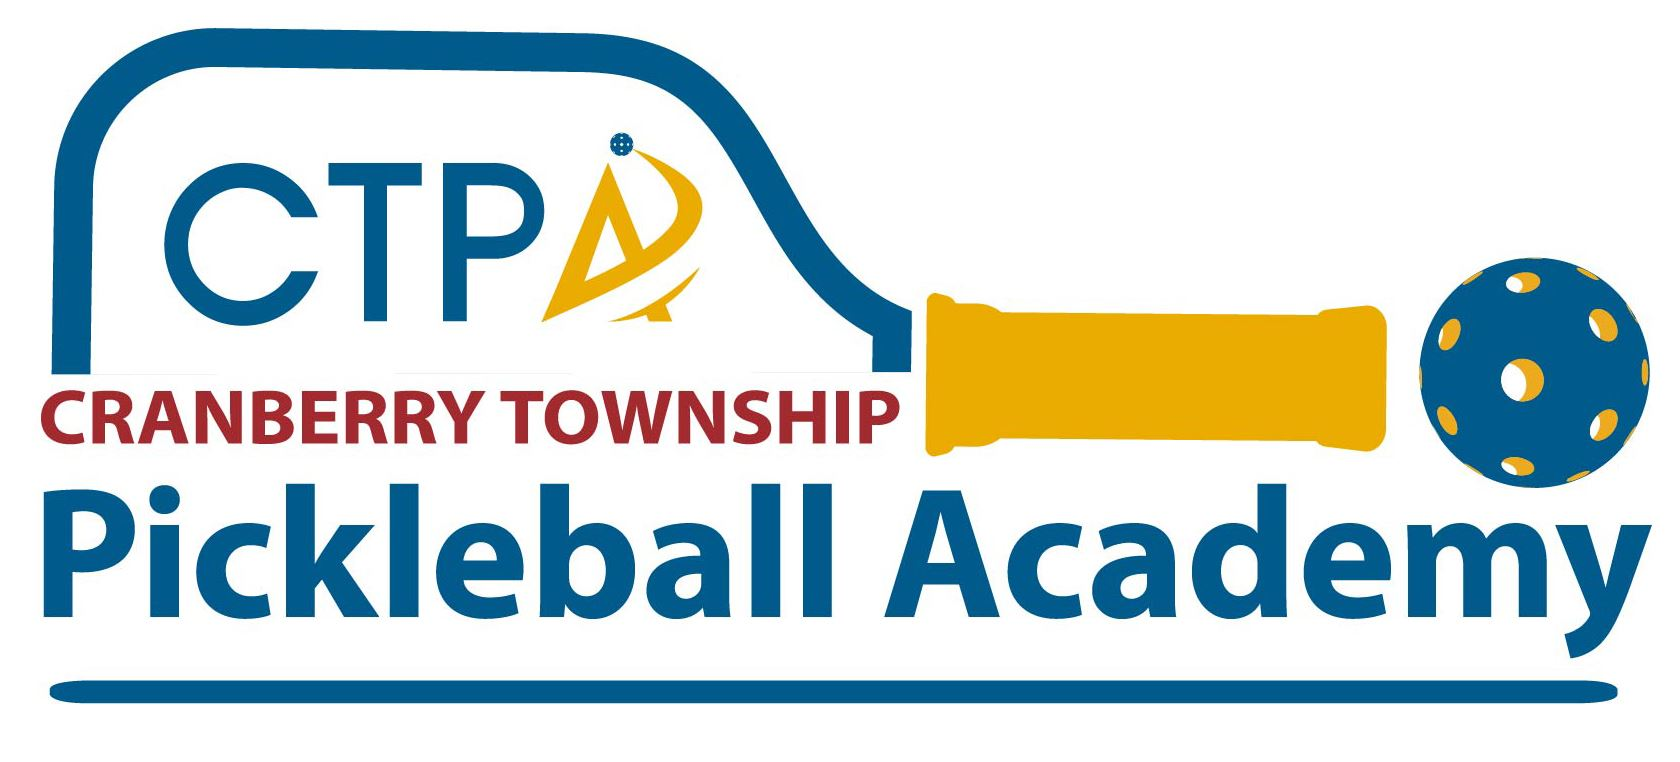 Pickleball Academy logo